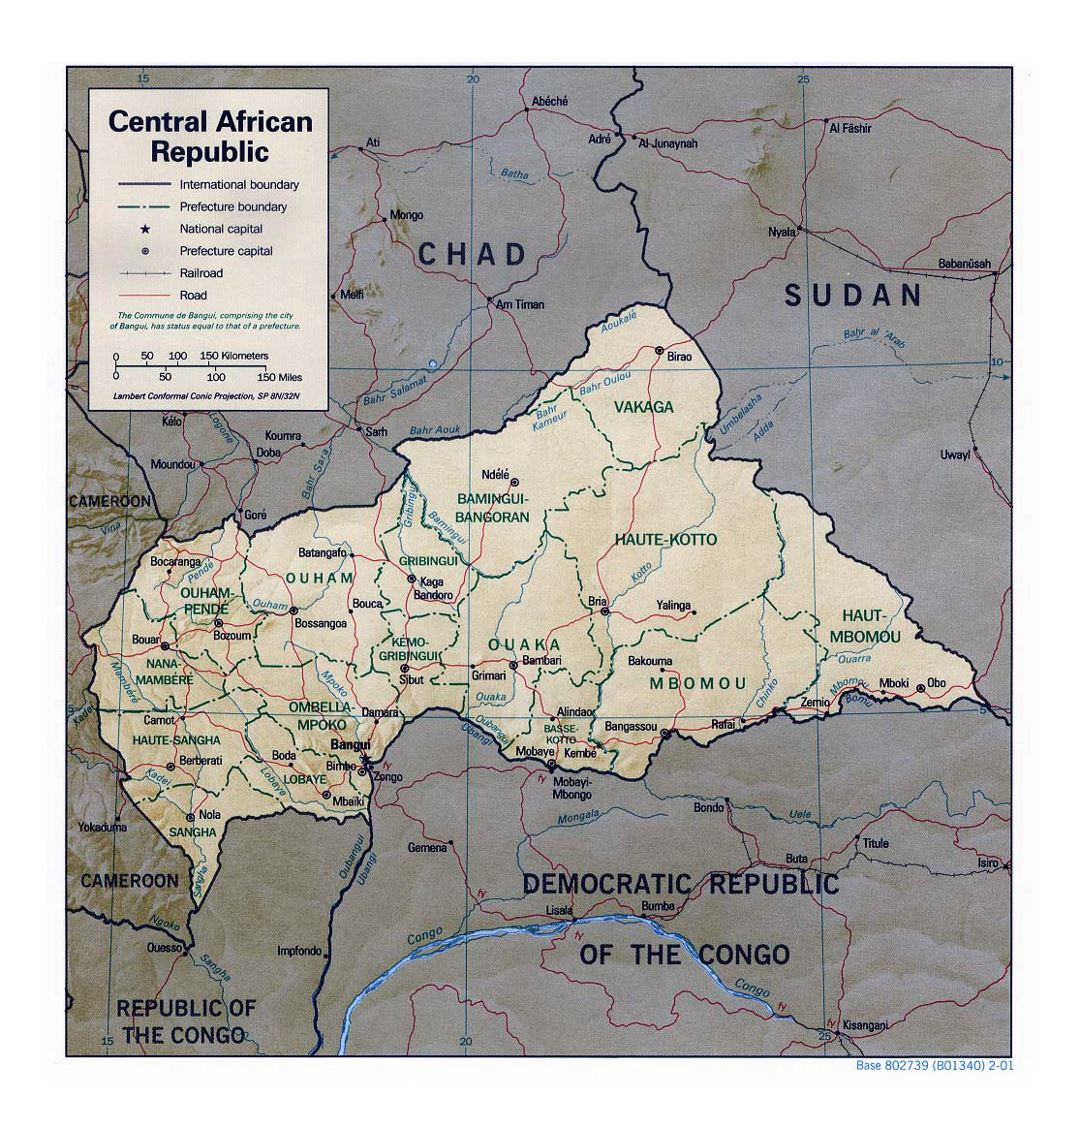 Detailed political and administrative map of Central African Republic with relief, roads, railroads and major cities - 2001